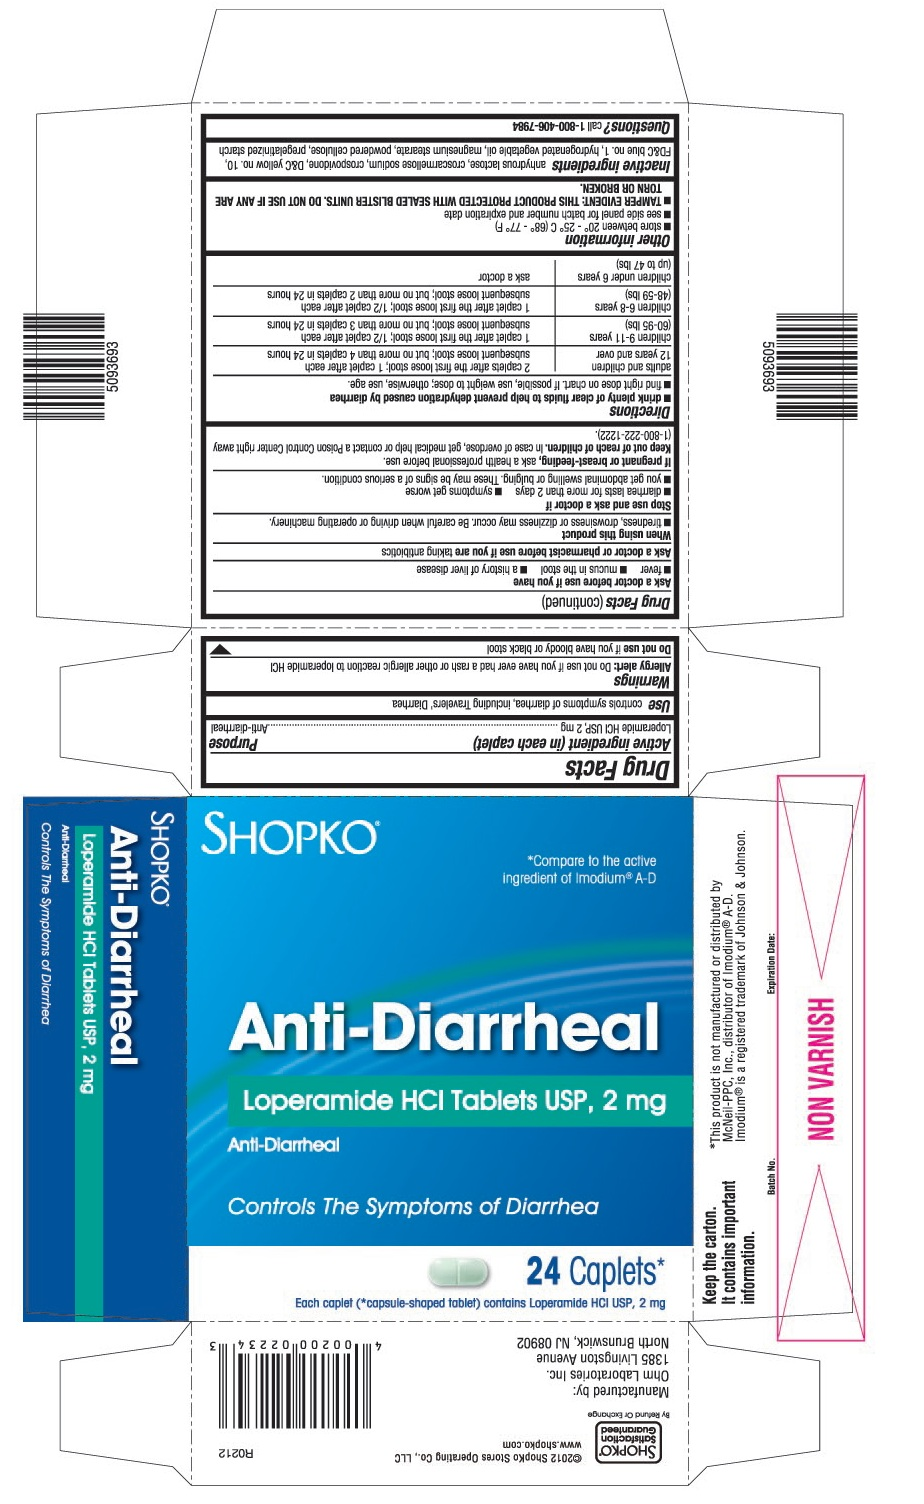 This is the 24 count blister carton label for Shopko Loperamide HCl tablets USP, 2 mg.